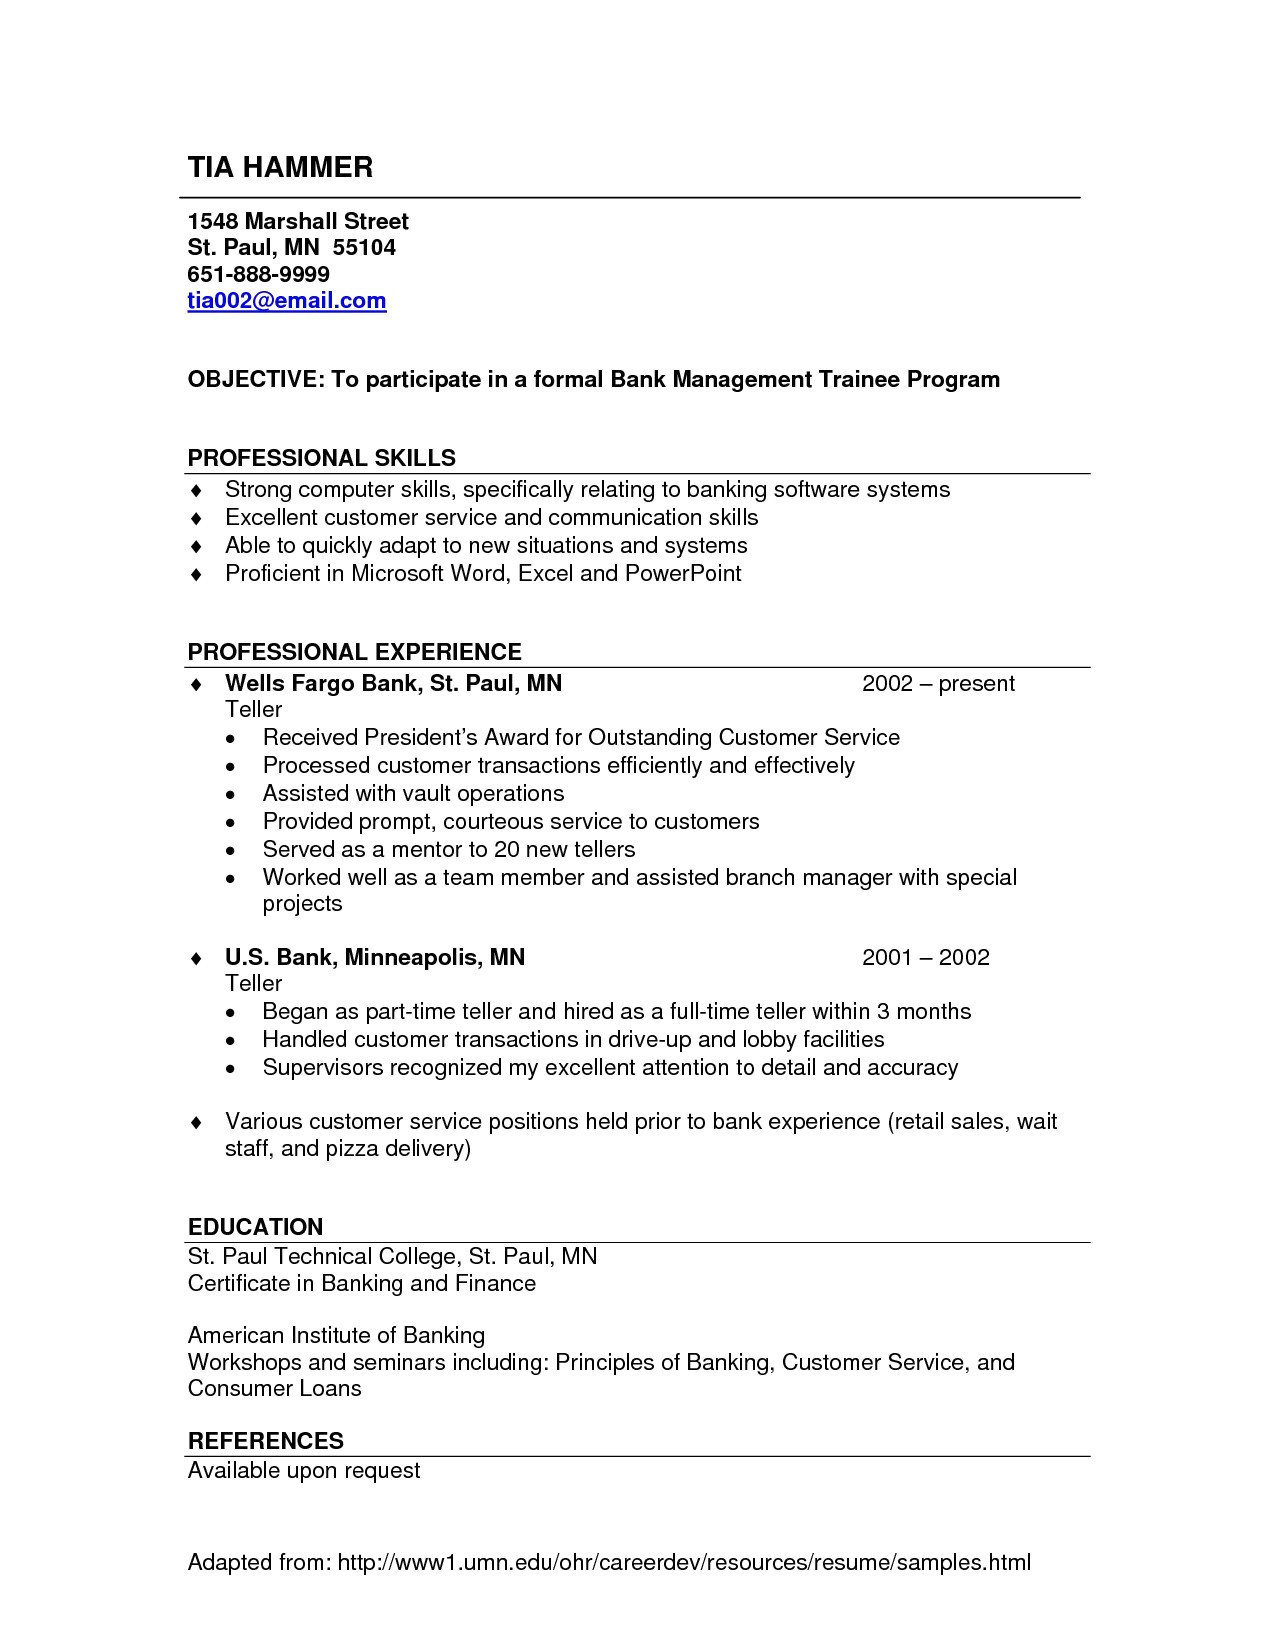 Skills Usa Resume Template - Apa Resume Template New Examples A Resume Fresh Resume Examples 0d